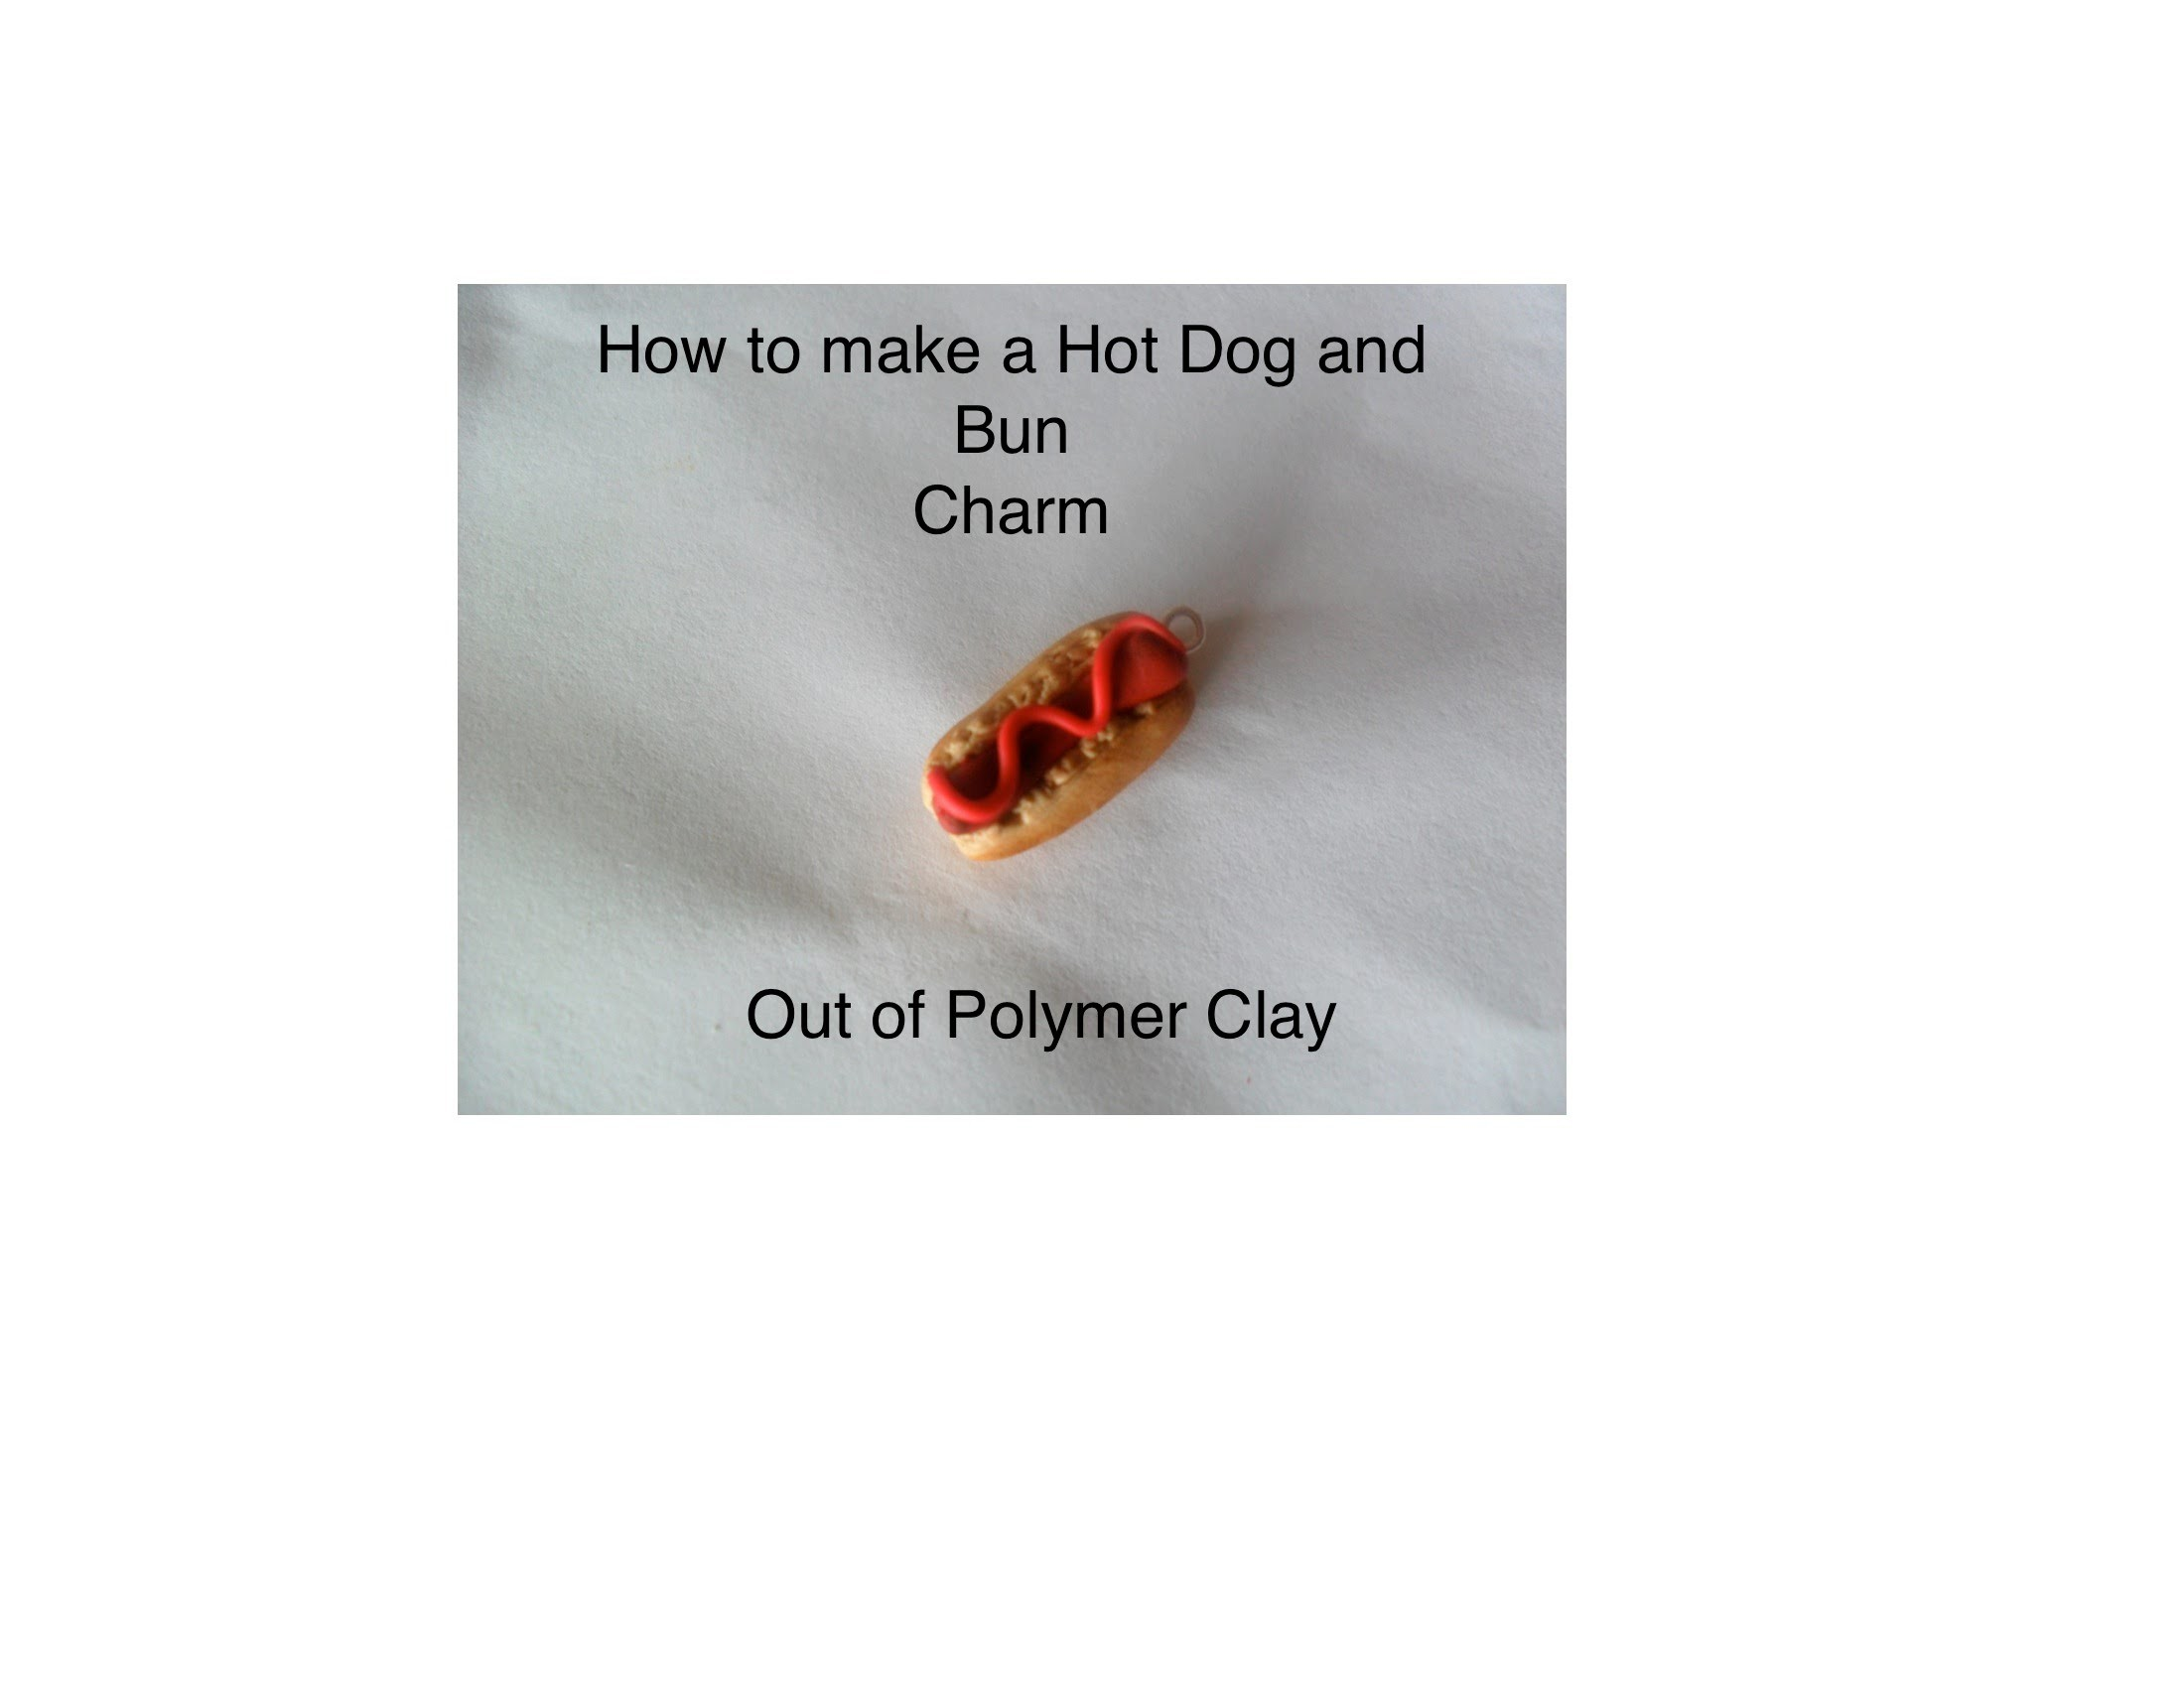 DIY: How to make a Hot Dog and Bun Charm out of Polymer Clay(So Sweet Charms)